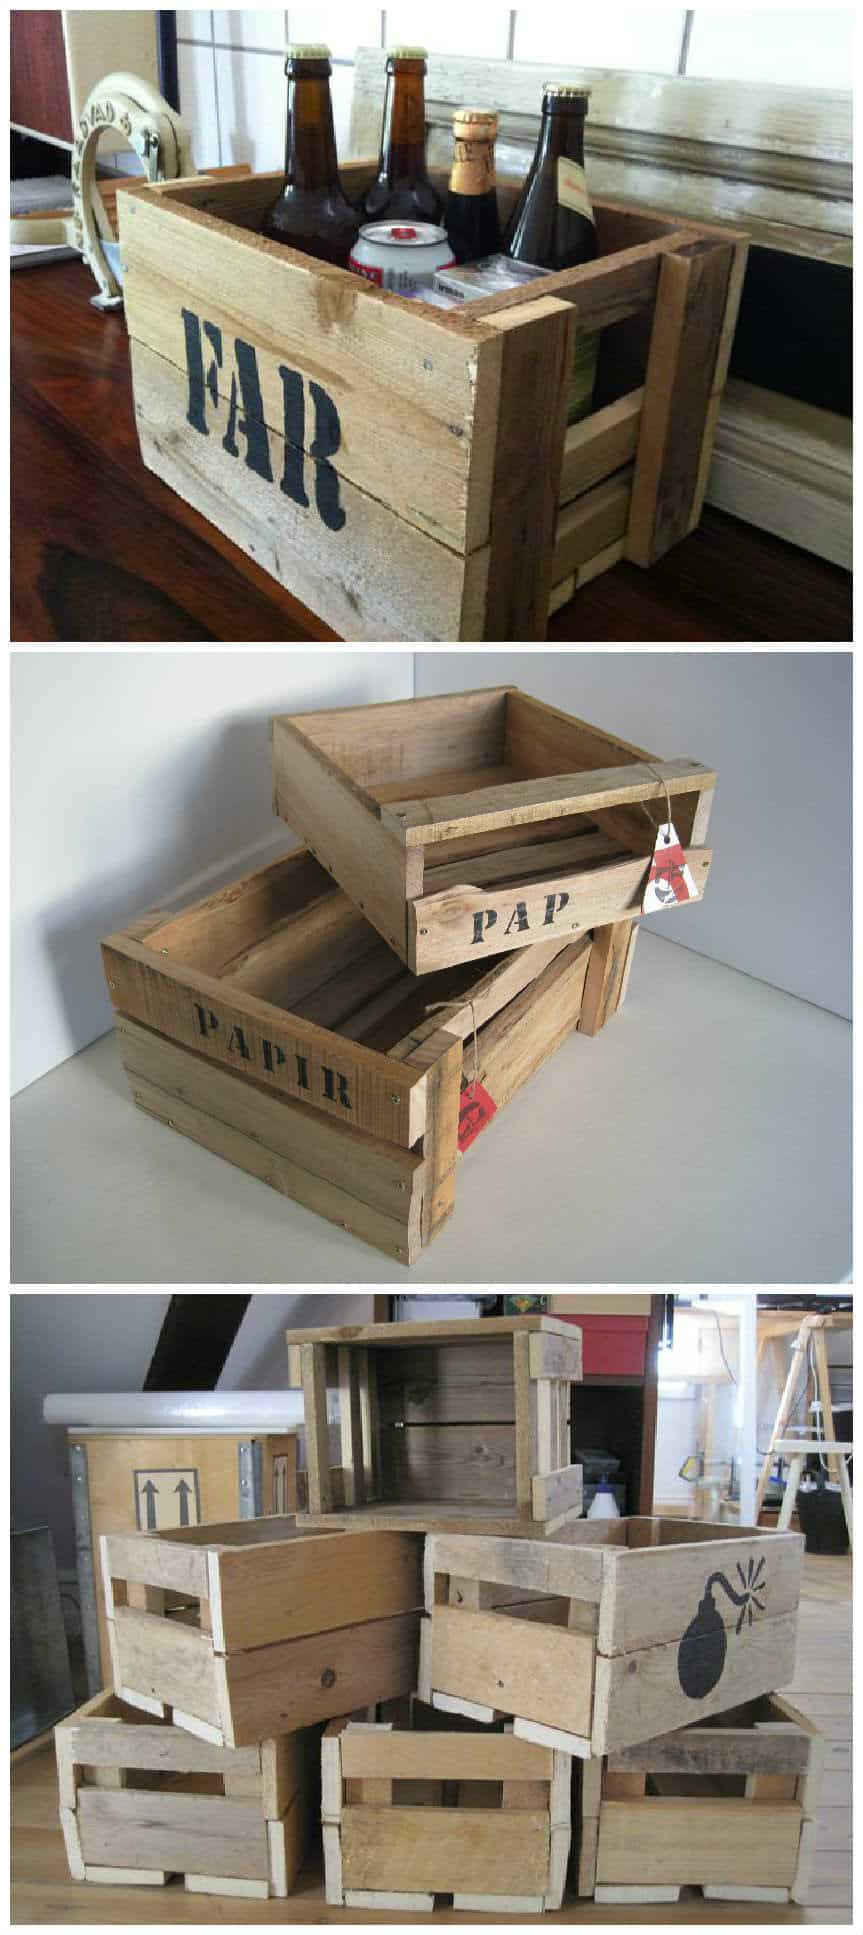 Wooden Boxes Made Of Pallet Wood • 1001 Pallets